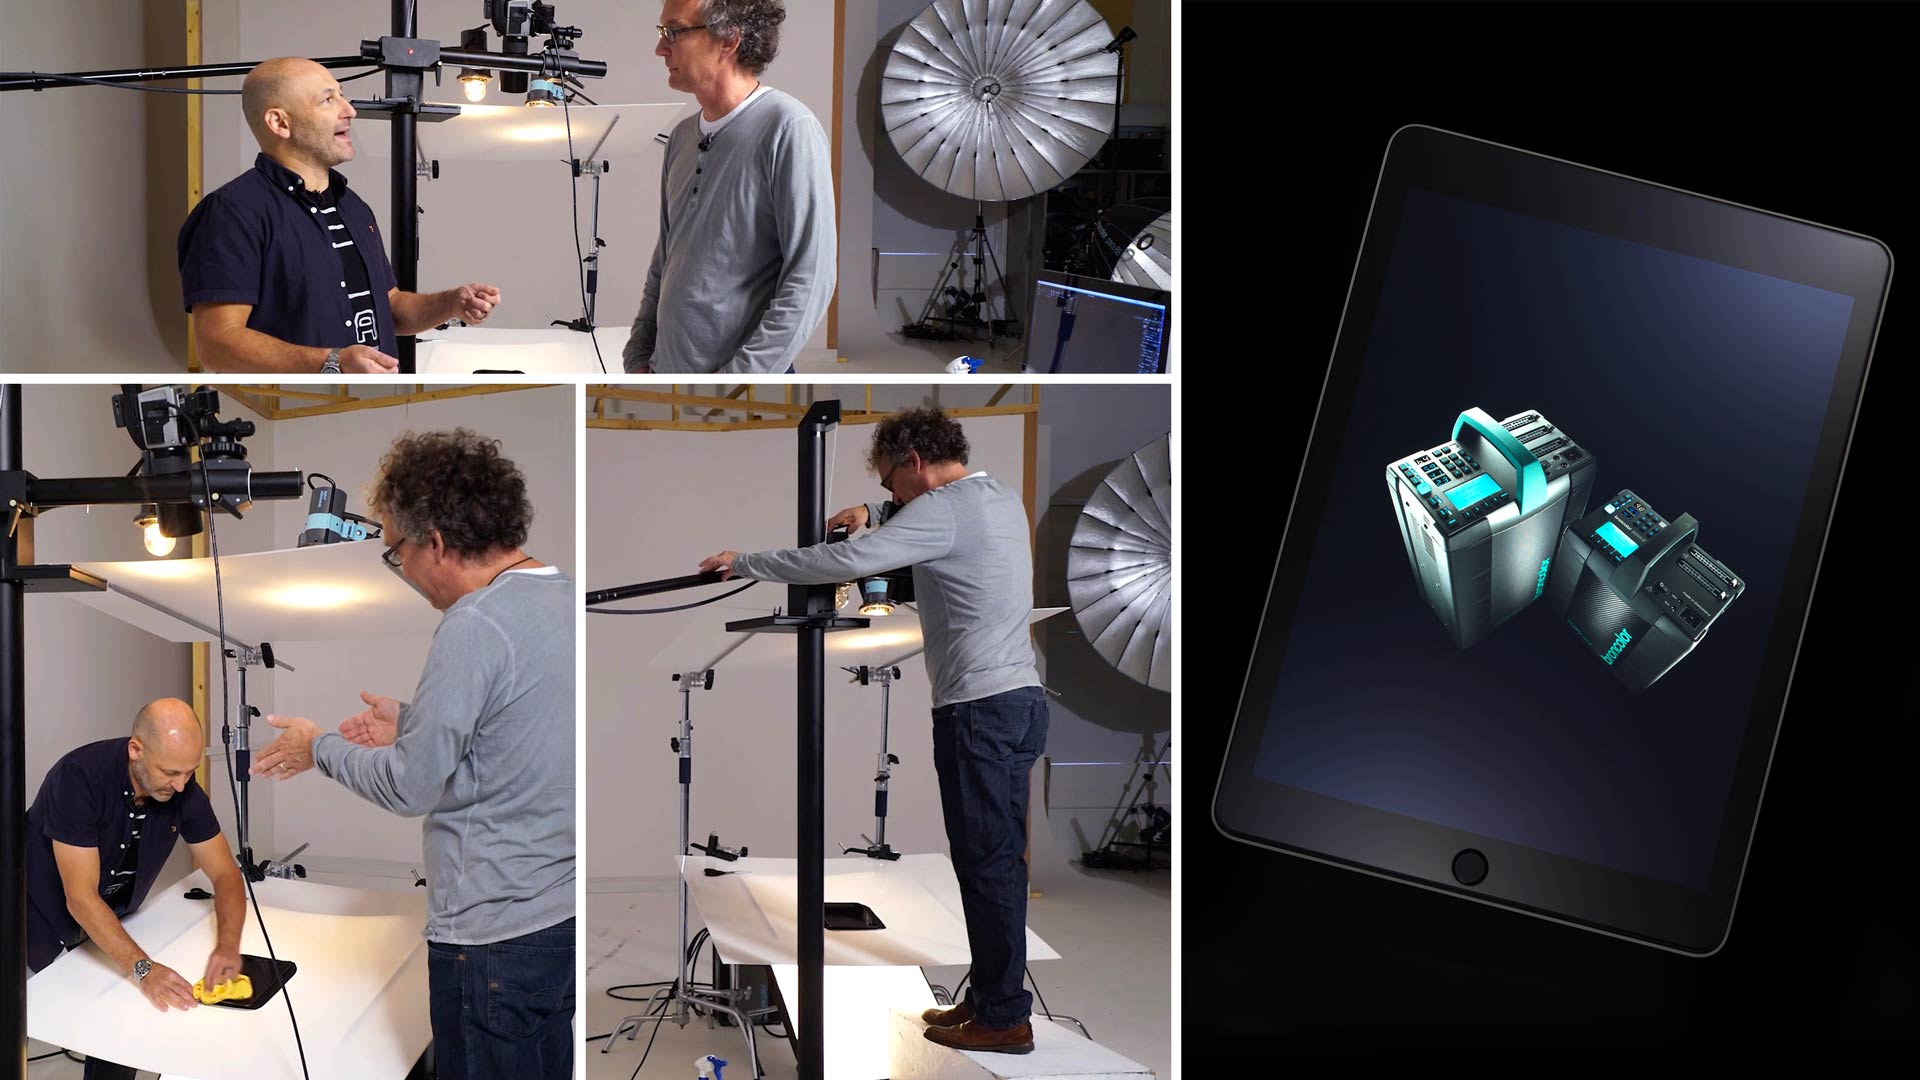 'How To' Full Version – Shooting Tech Devices